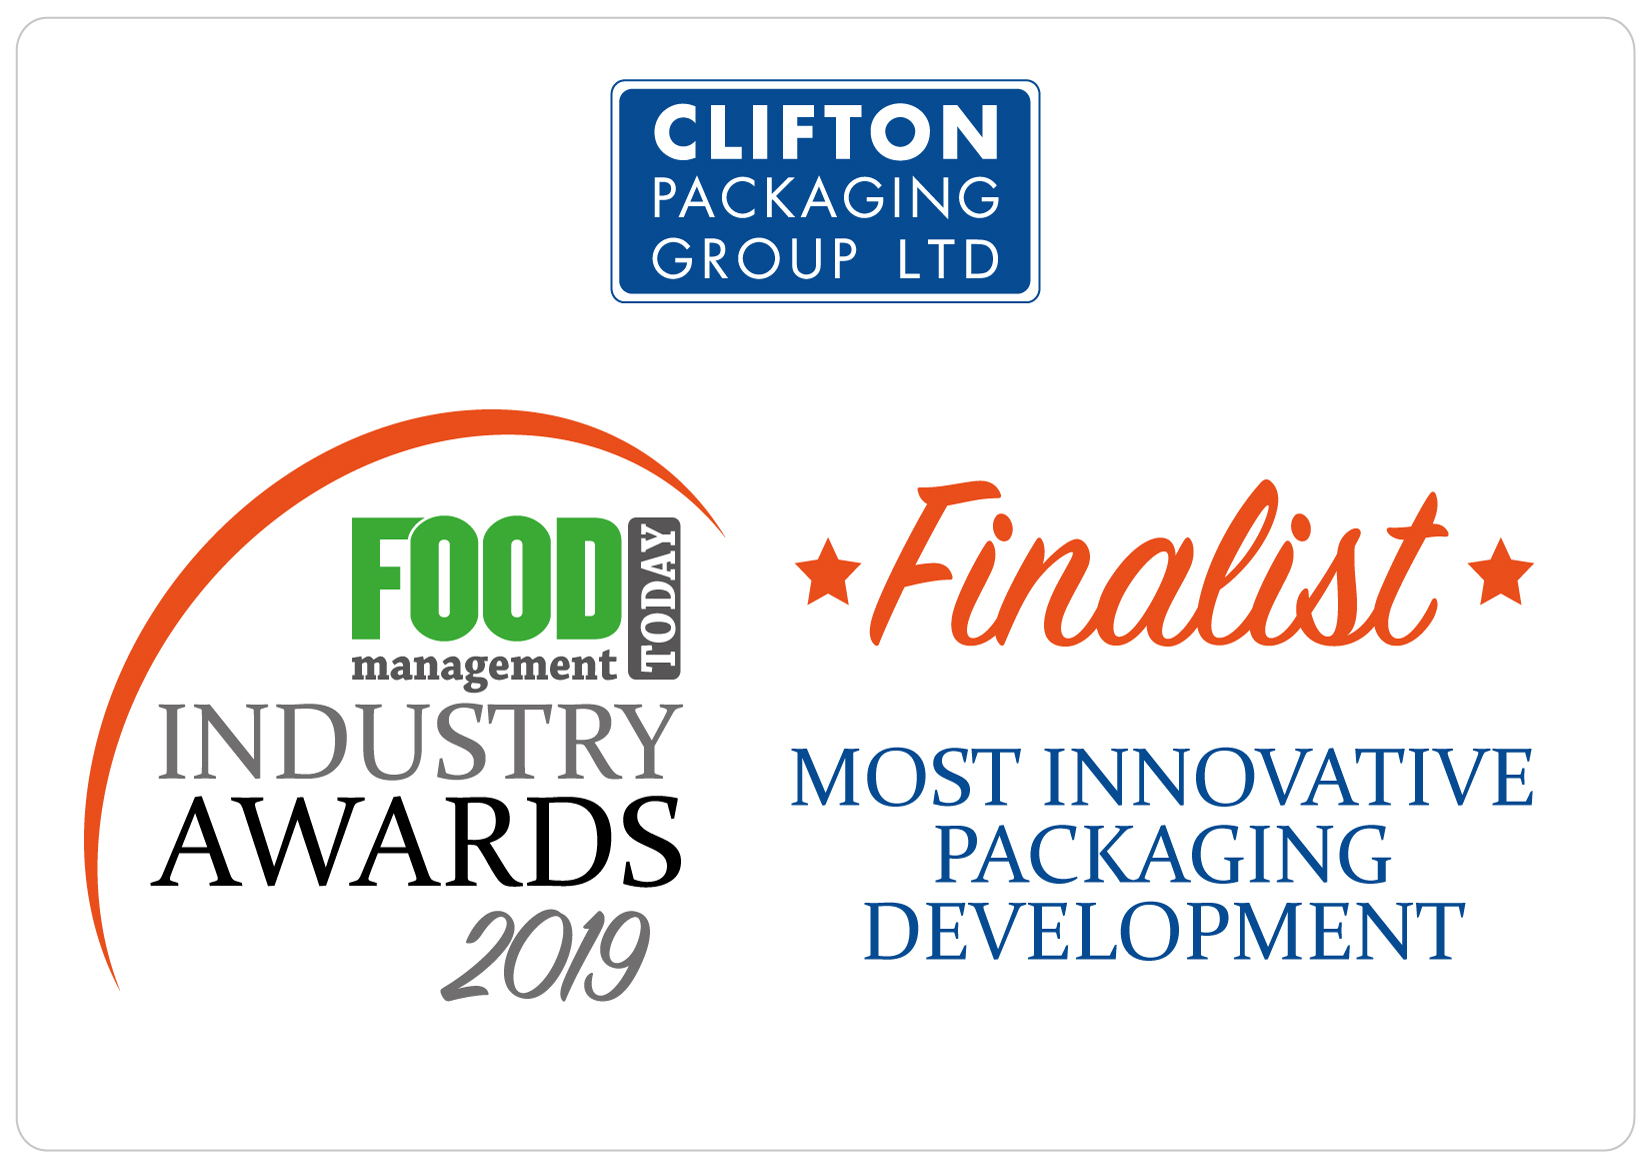 FMT-Industry Awards 2019 Finalist, Most Innovative Packaging Development